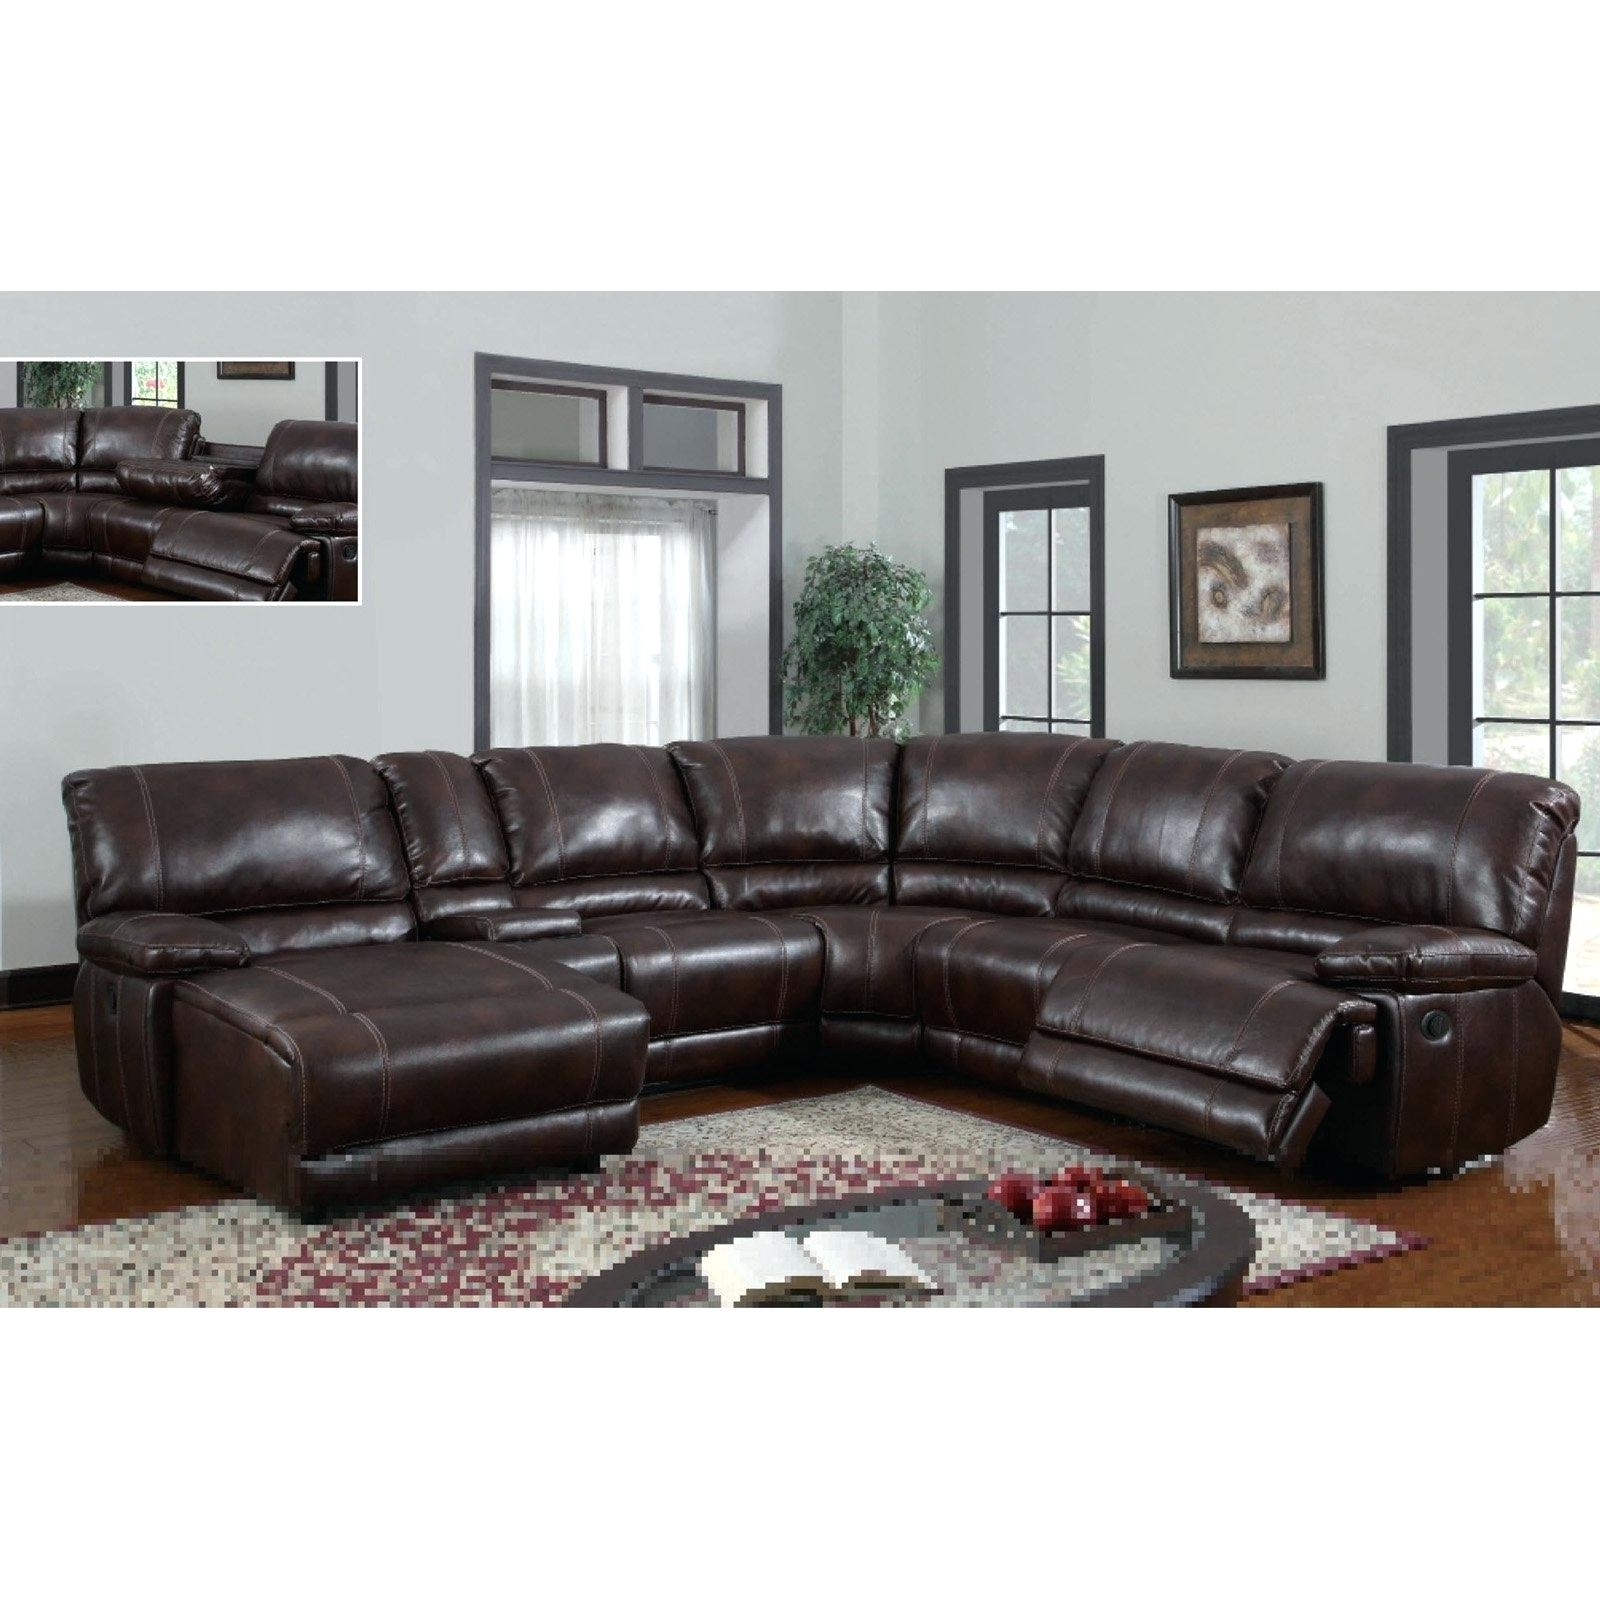 Best And Newest Furniture : 4 Seater Sofa Sale Big Sofa Universal 3 Seater Sofa With Large 4 Seater Sofas (View 11 of 20)